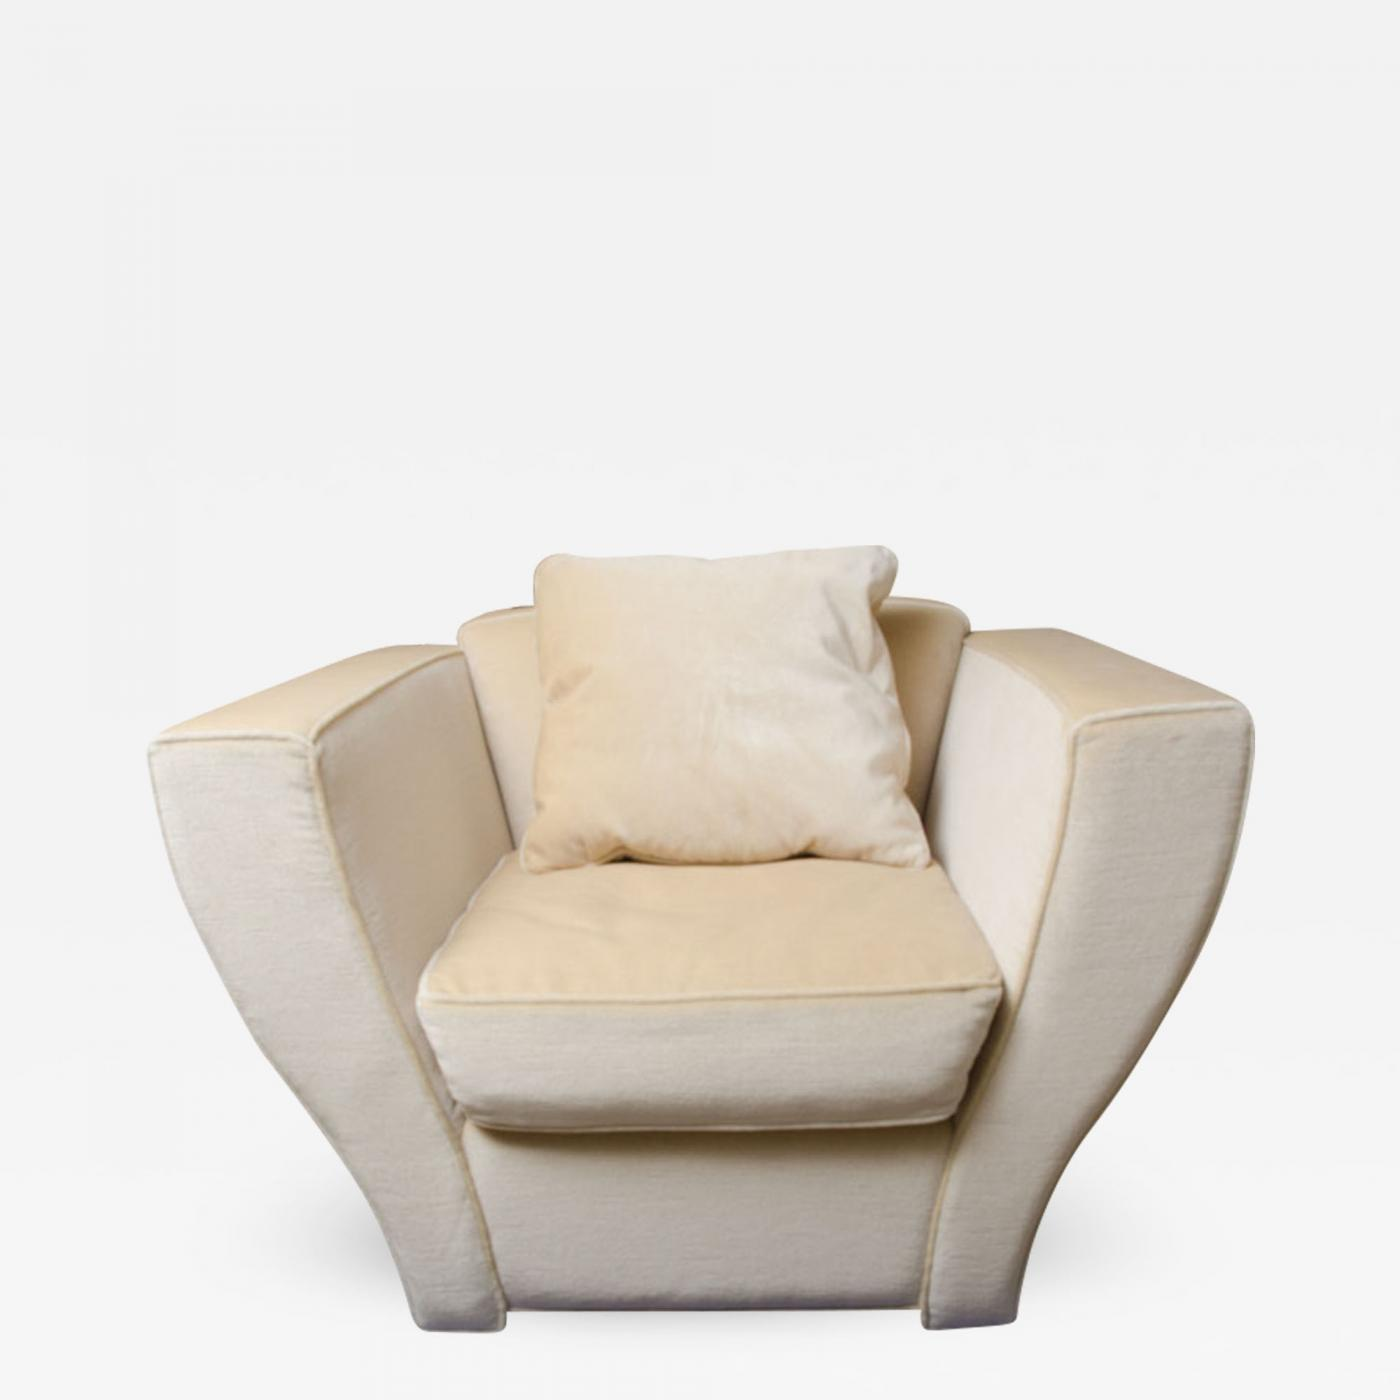 oversized upholstered chair wheelchair size brueton lounge in mohair